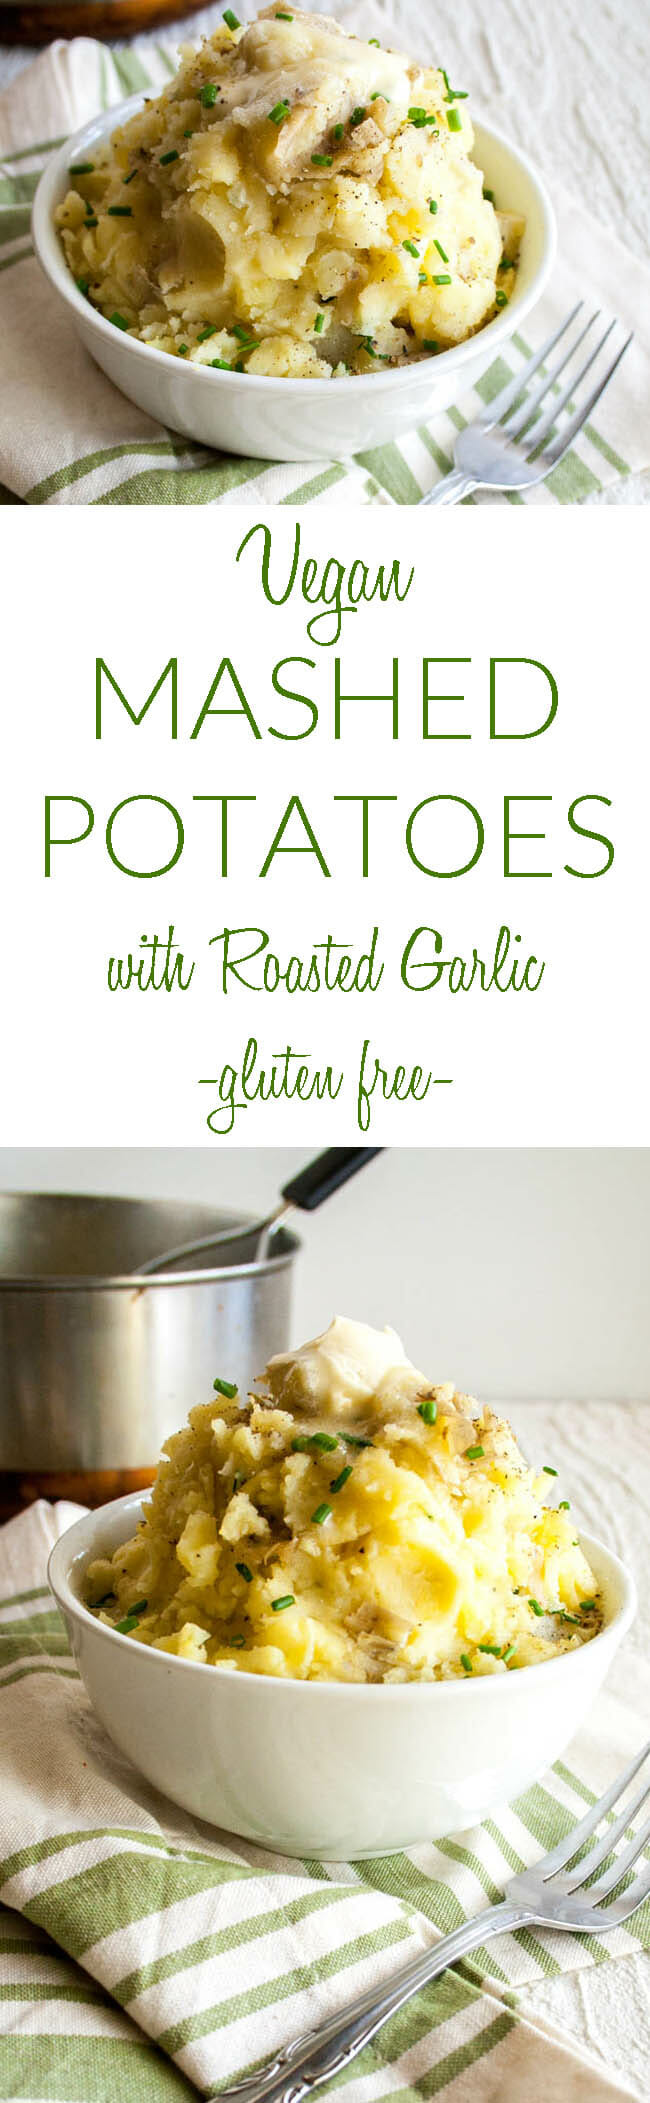 Vegan Mashed Potatoes with Roasted Garlic collage photo with text.